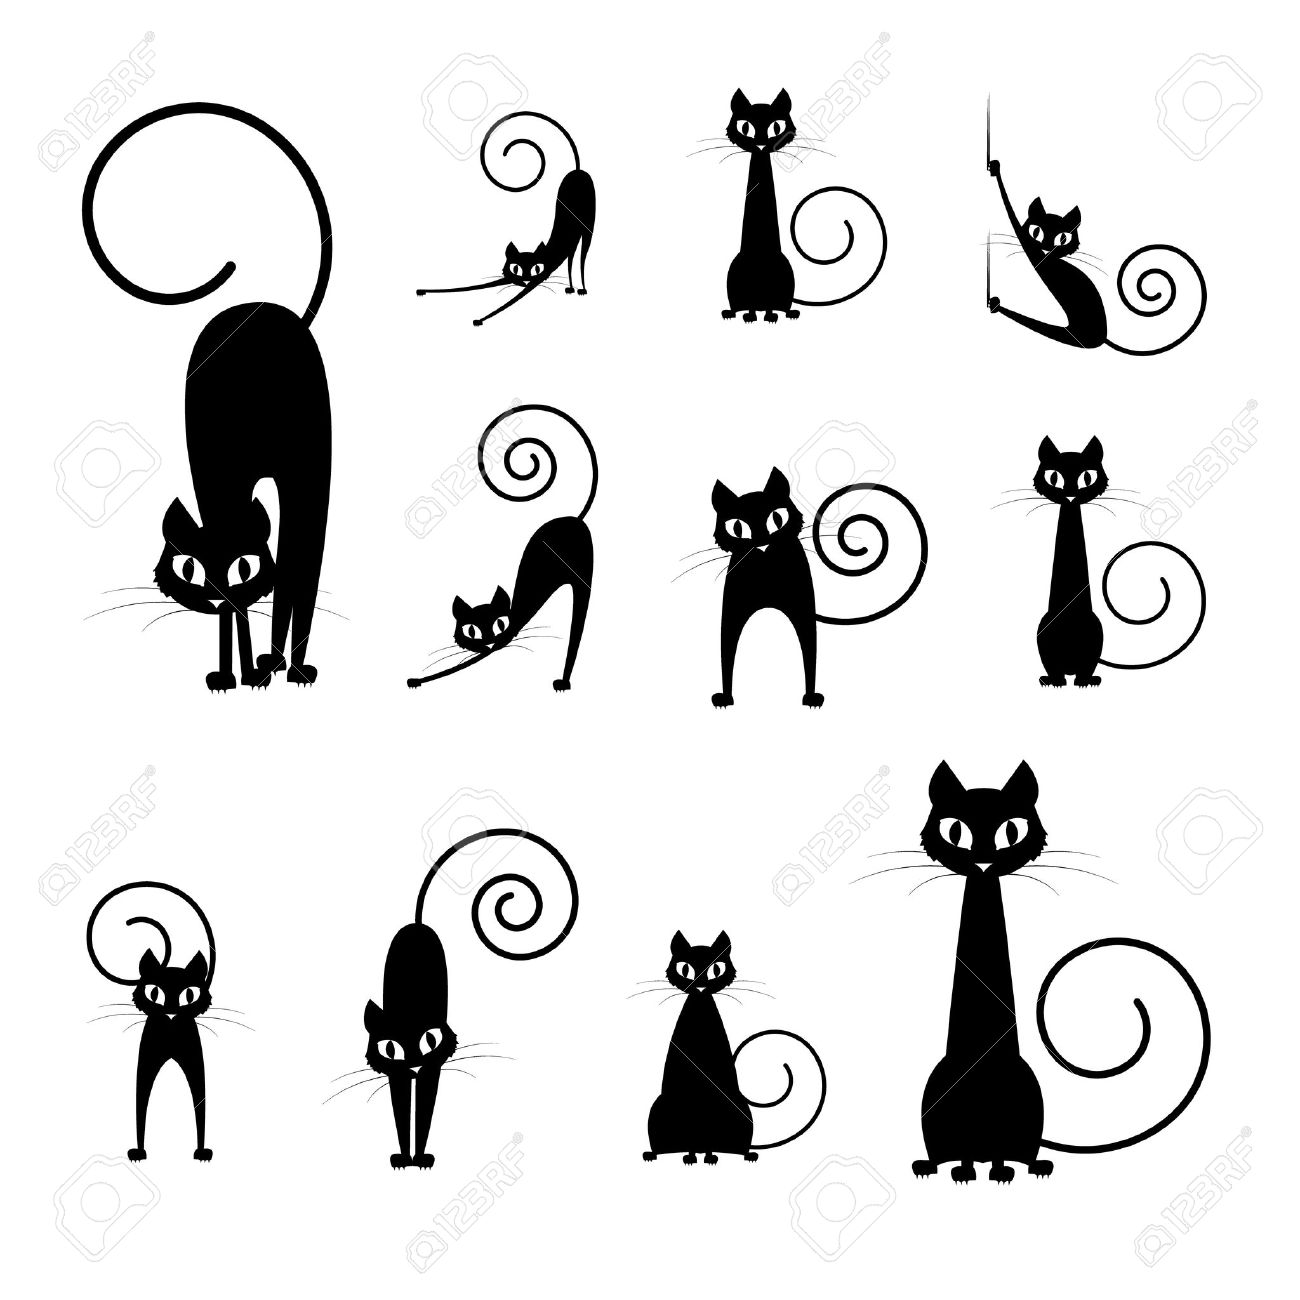 black cat silhouette collections, cartoon cat black and white,...